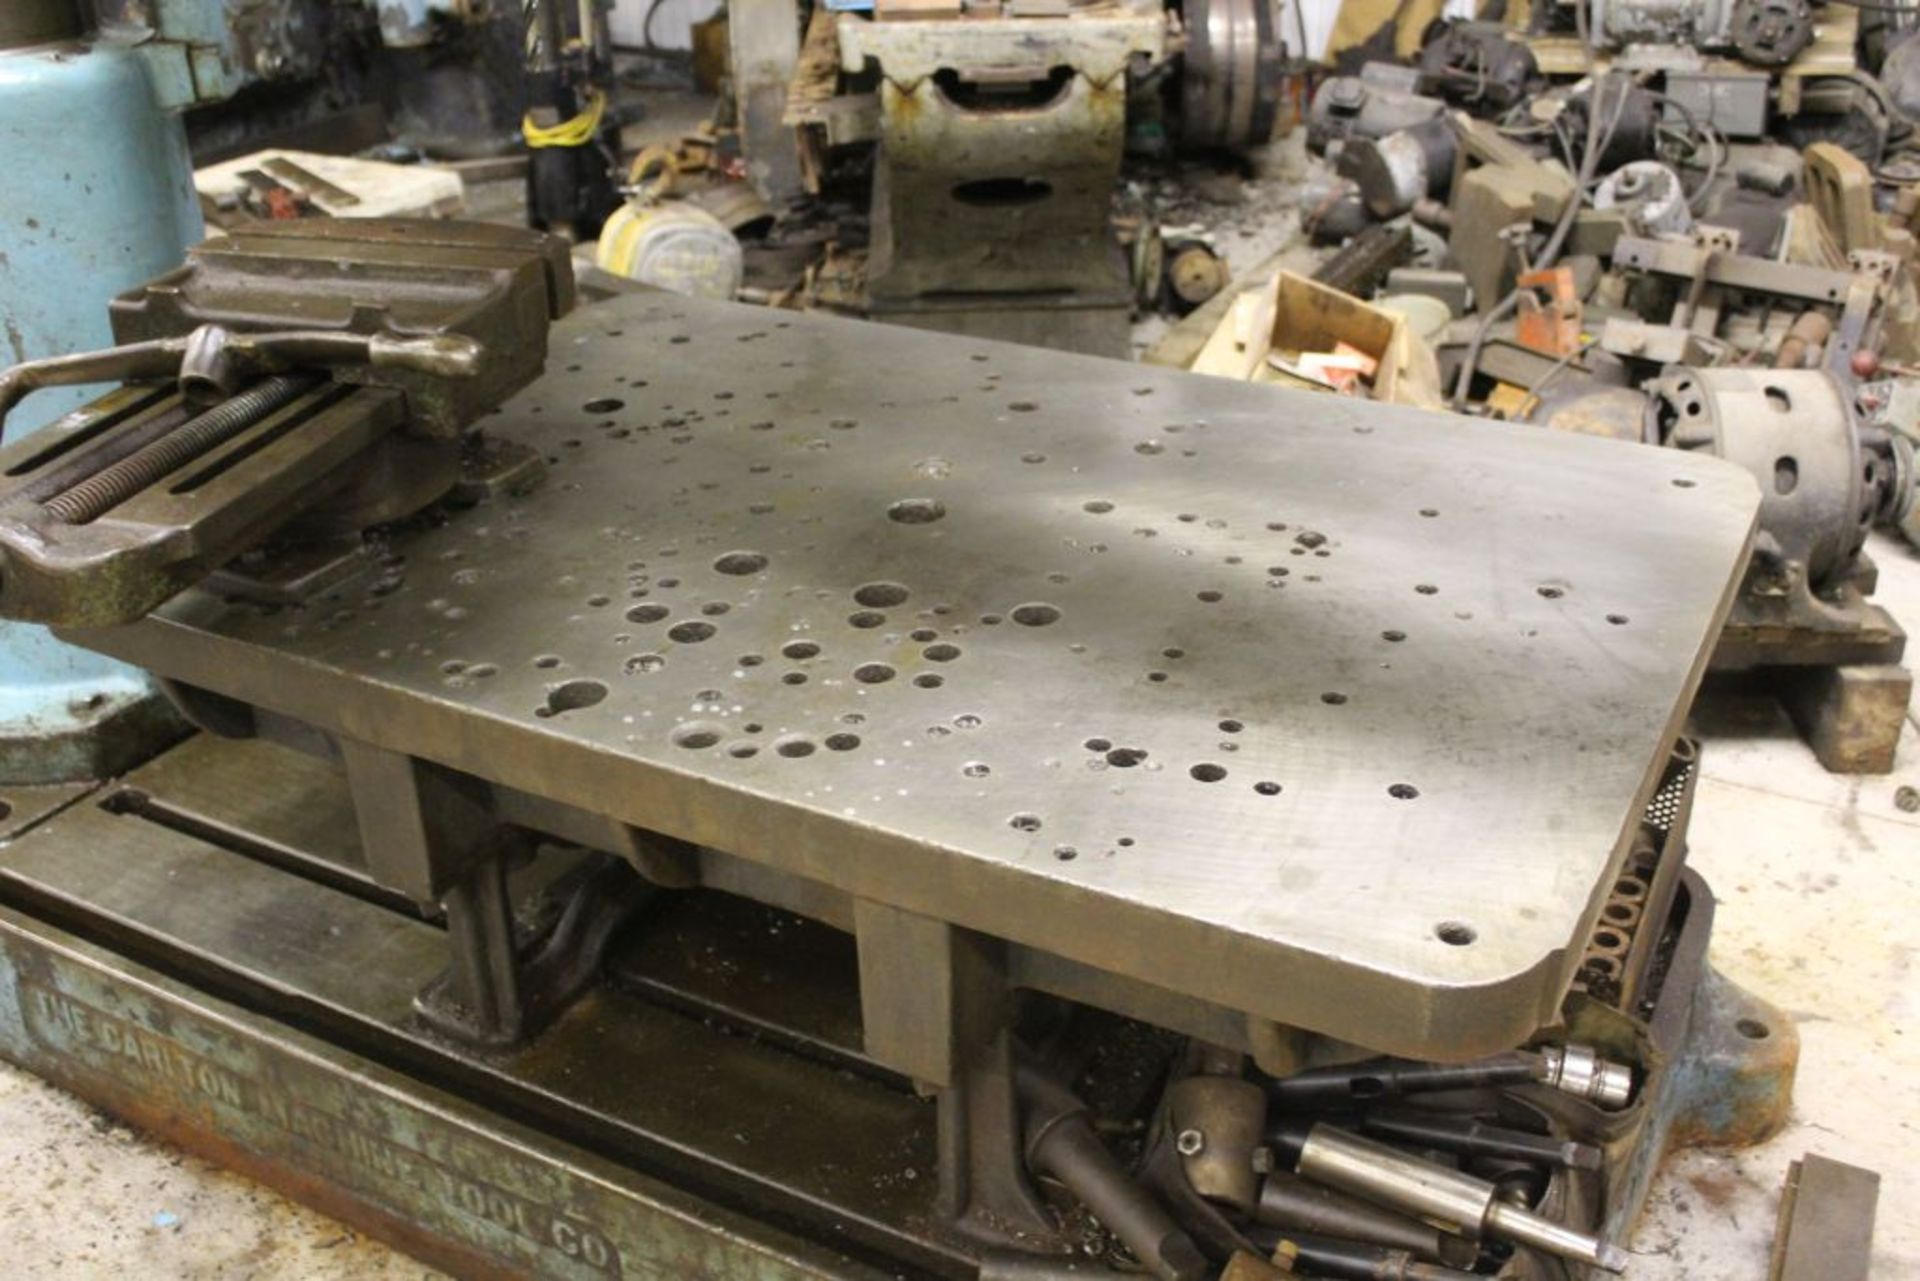 """Carlton radial arm drill, 5' arm, 11"""" column, 9' 9"""" total height, 36"""" x 53"""" bed, misc. tooling. - Image 4 of 8"""